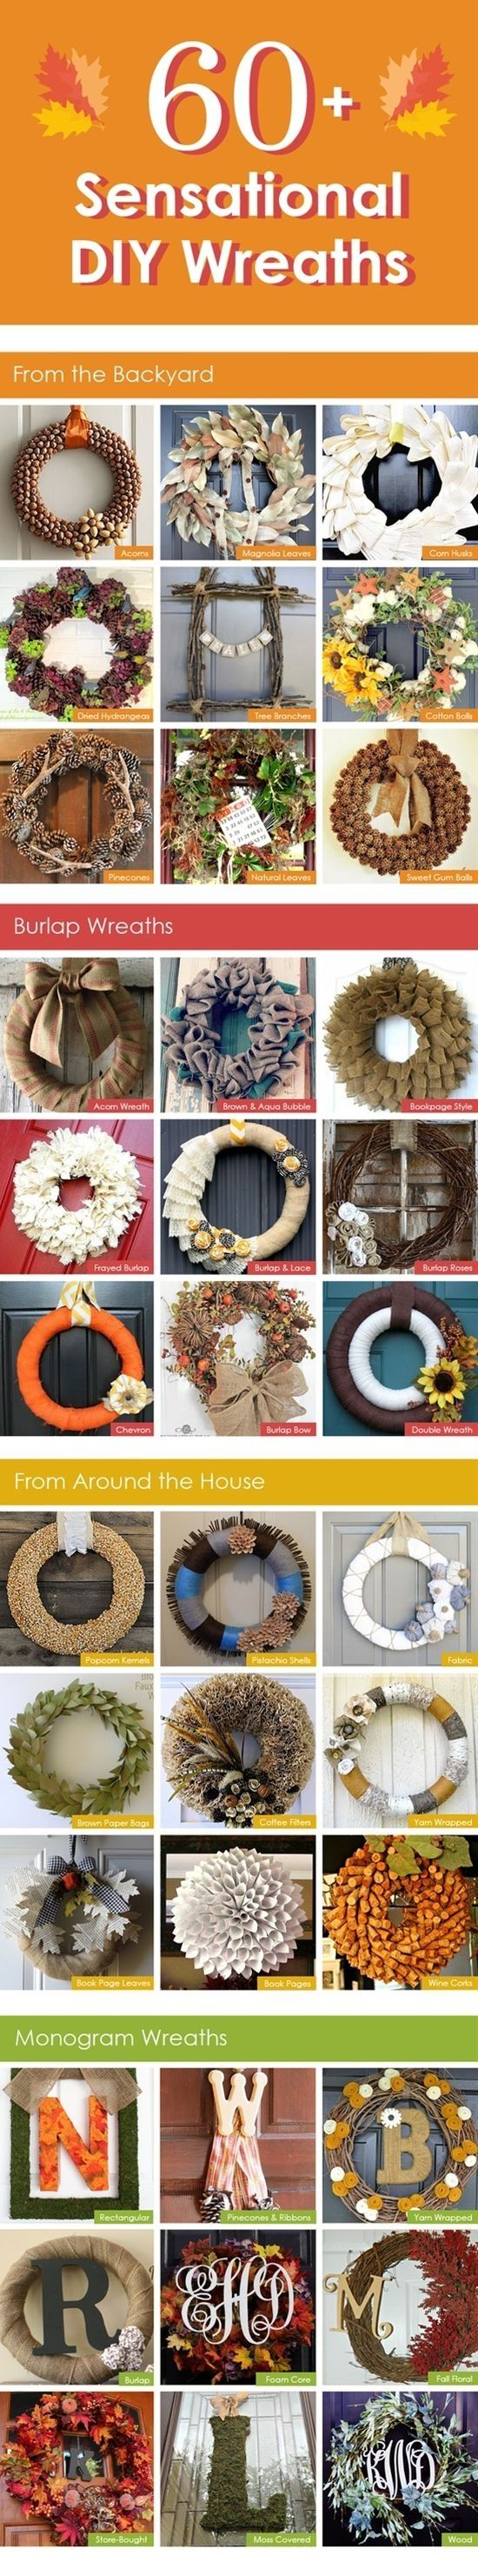 60+ Sensational DIY Wreaths For the Fall — Wreaths from things in the backyard, around the home, burlap wreaths, and monogram wreaths! by veronica.cool.75